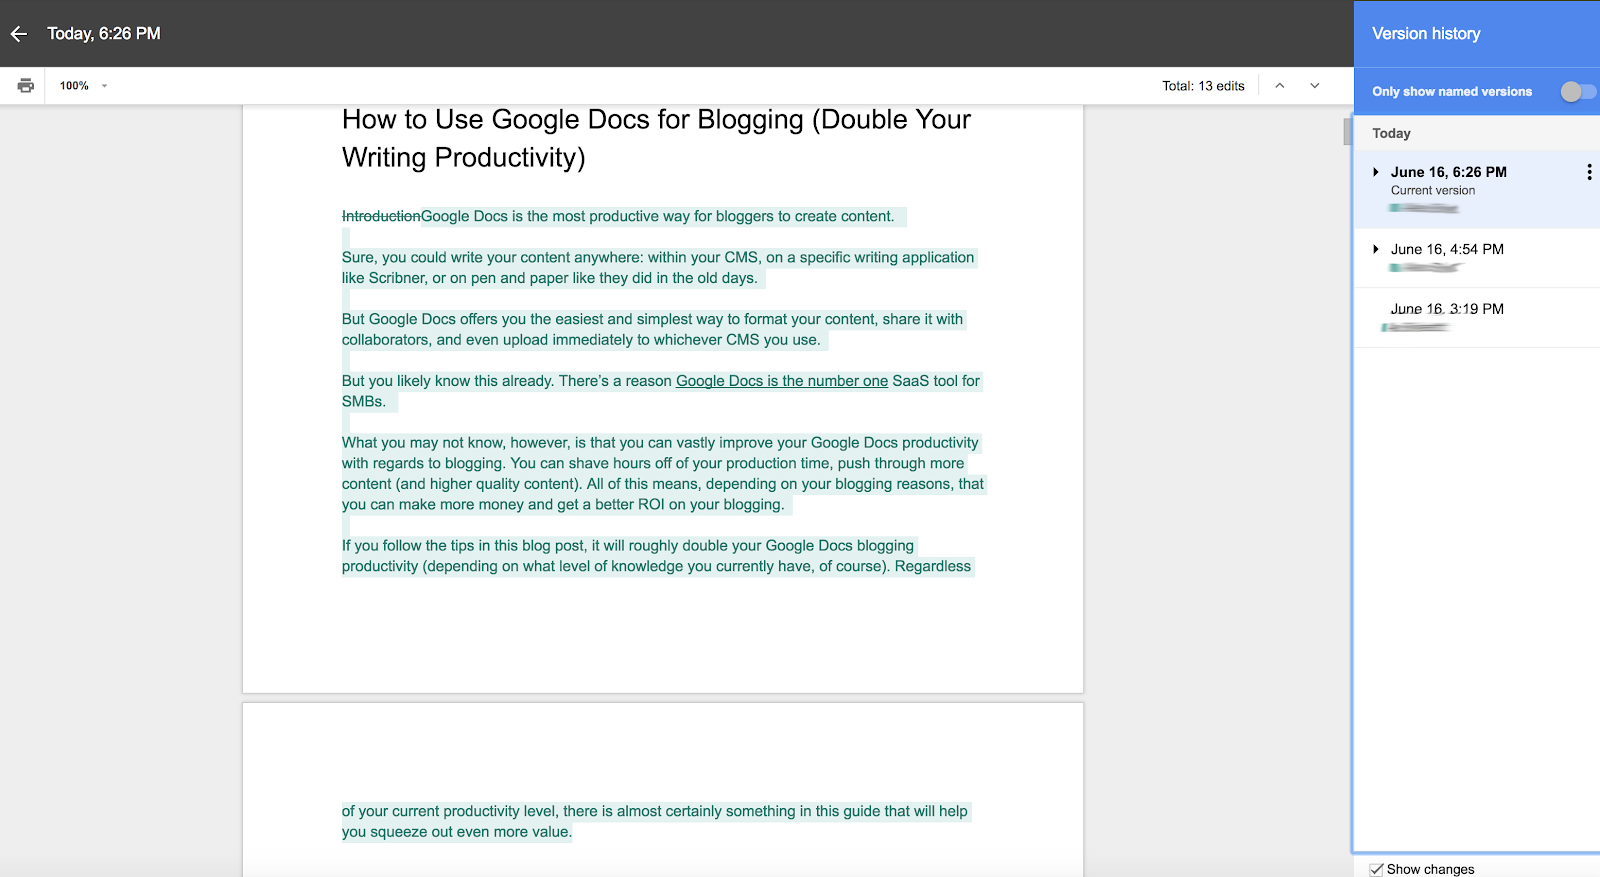 How to Use Google Docs for Blogging | Blog | Wordable io